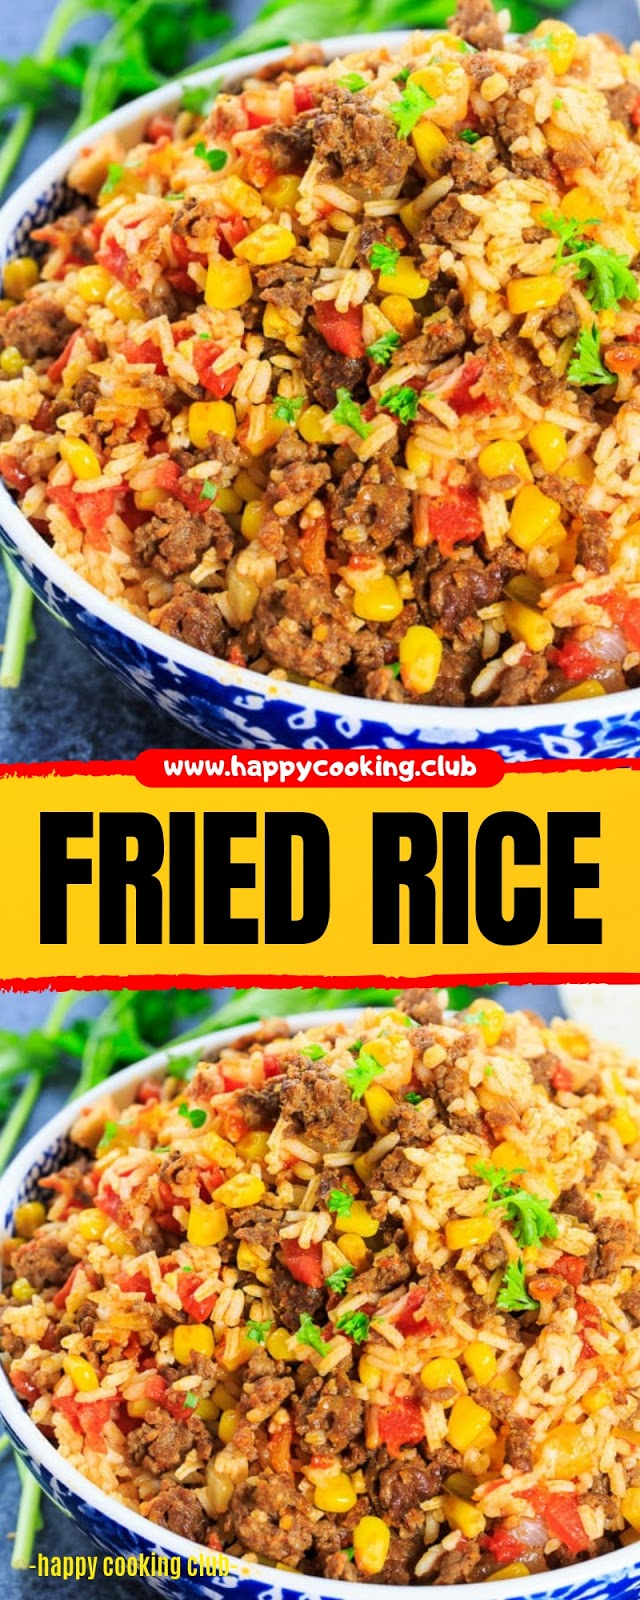 FRIED RICE DELICIOUS